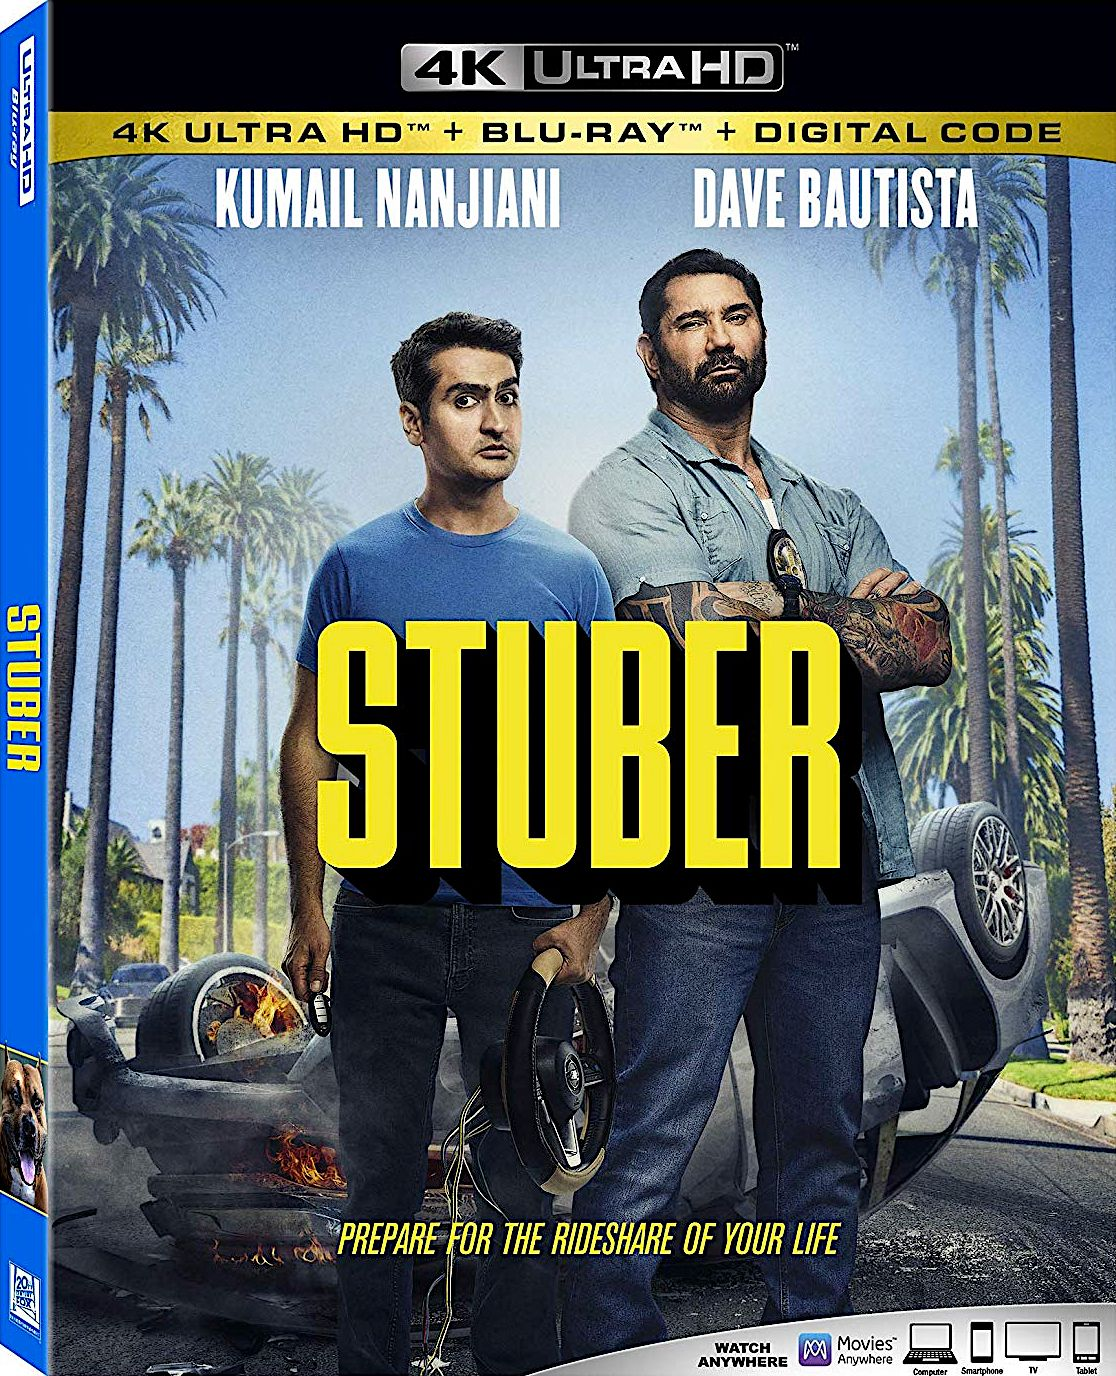 STUBER 4K BLURAY (20TH CENTURY FOX / DISNEY) (With images